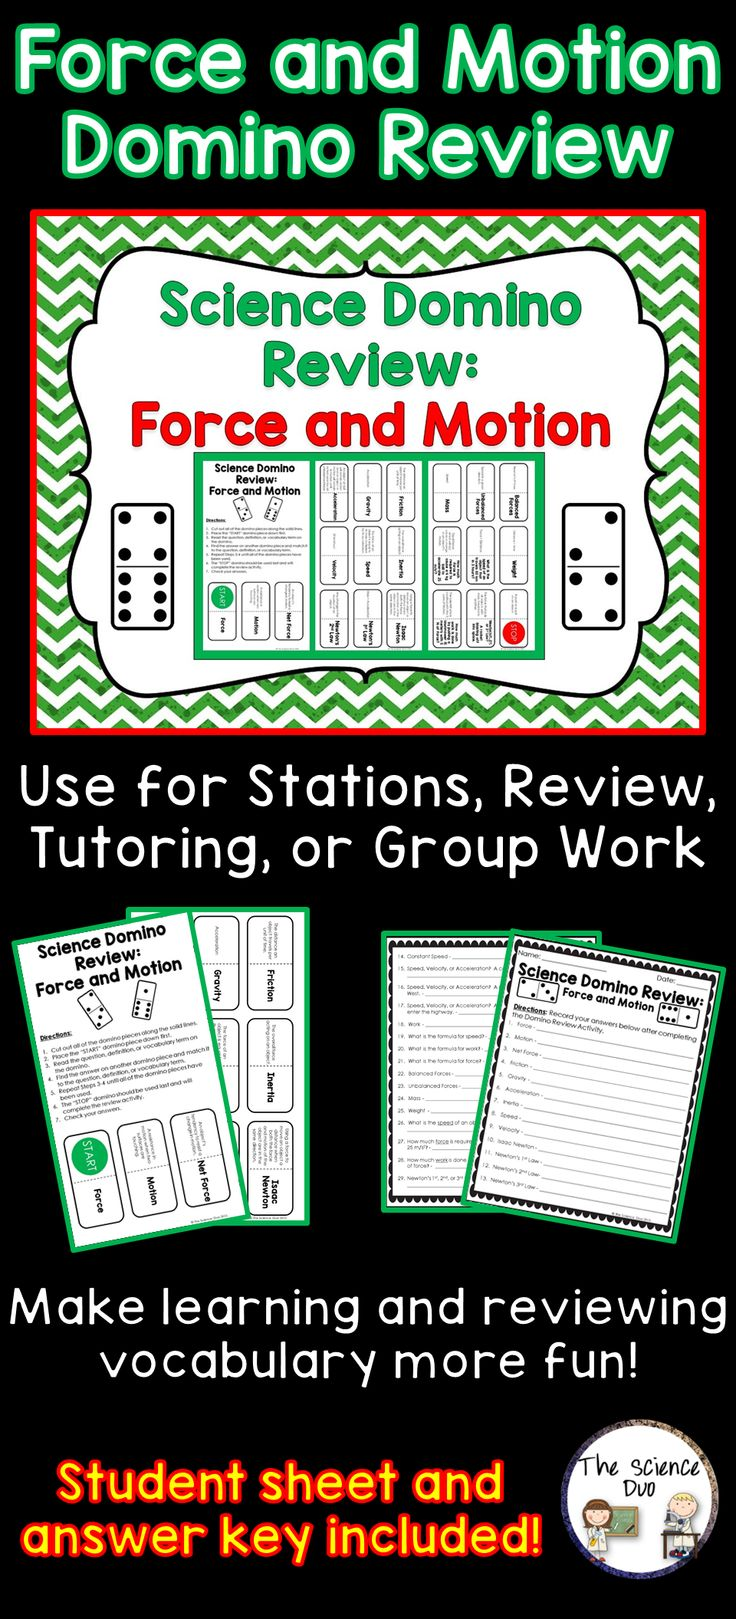 worksheet Reinforcement & Vocabulary Review Worksheets Answers workbooks reinforcement vocabulary review worksheets answers 1866 best science images on pinterest activities comic book and worksheet